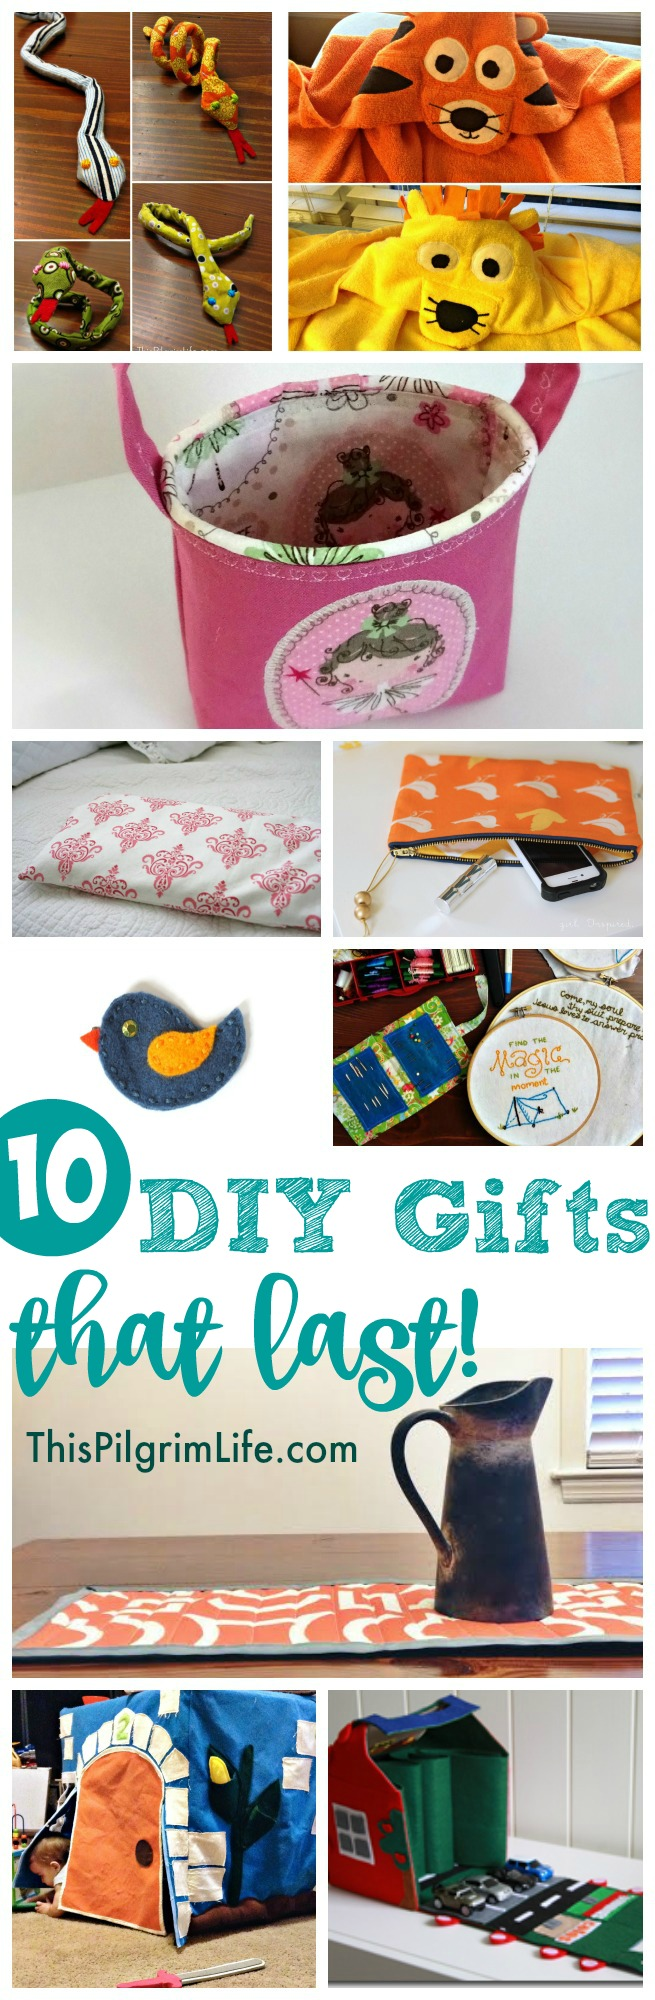 10 DIY gifts that stand the test of time! Give handmade gifts that can be enjoyed year after year.